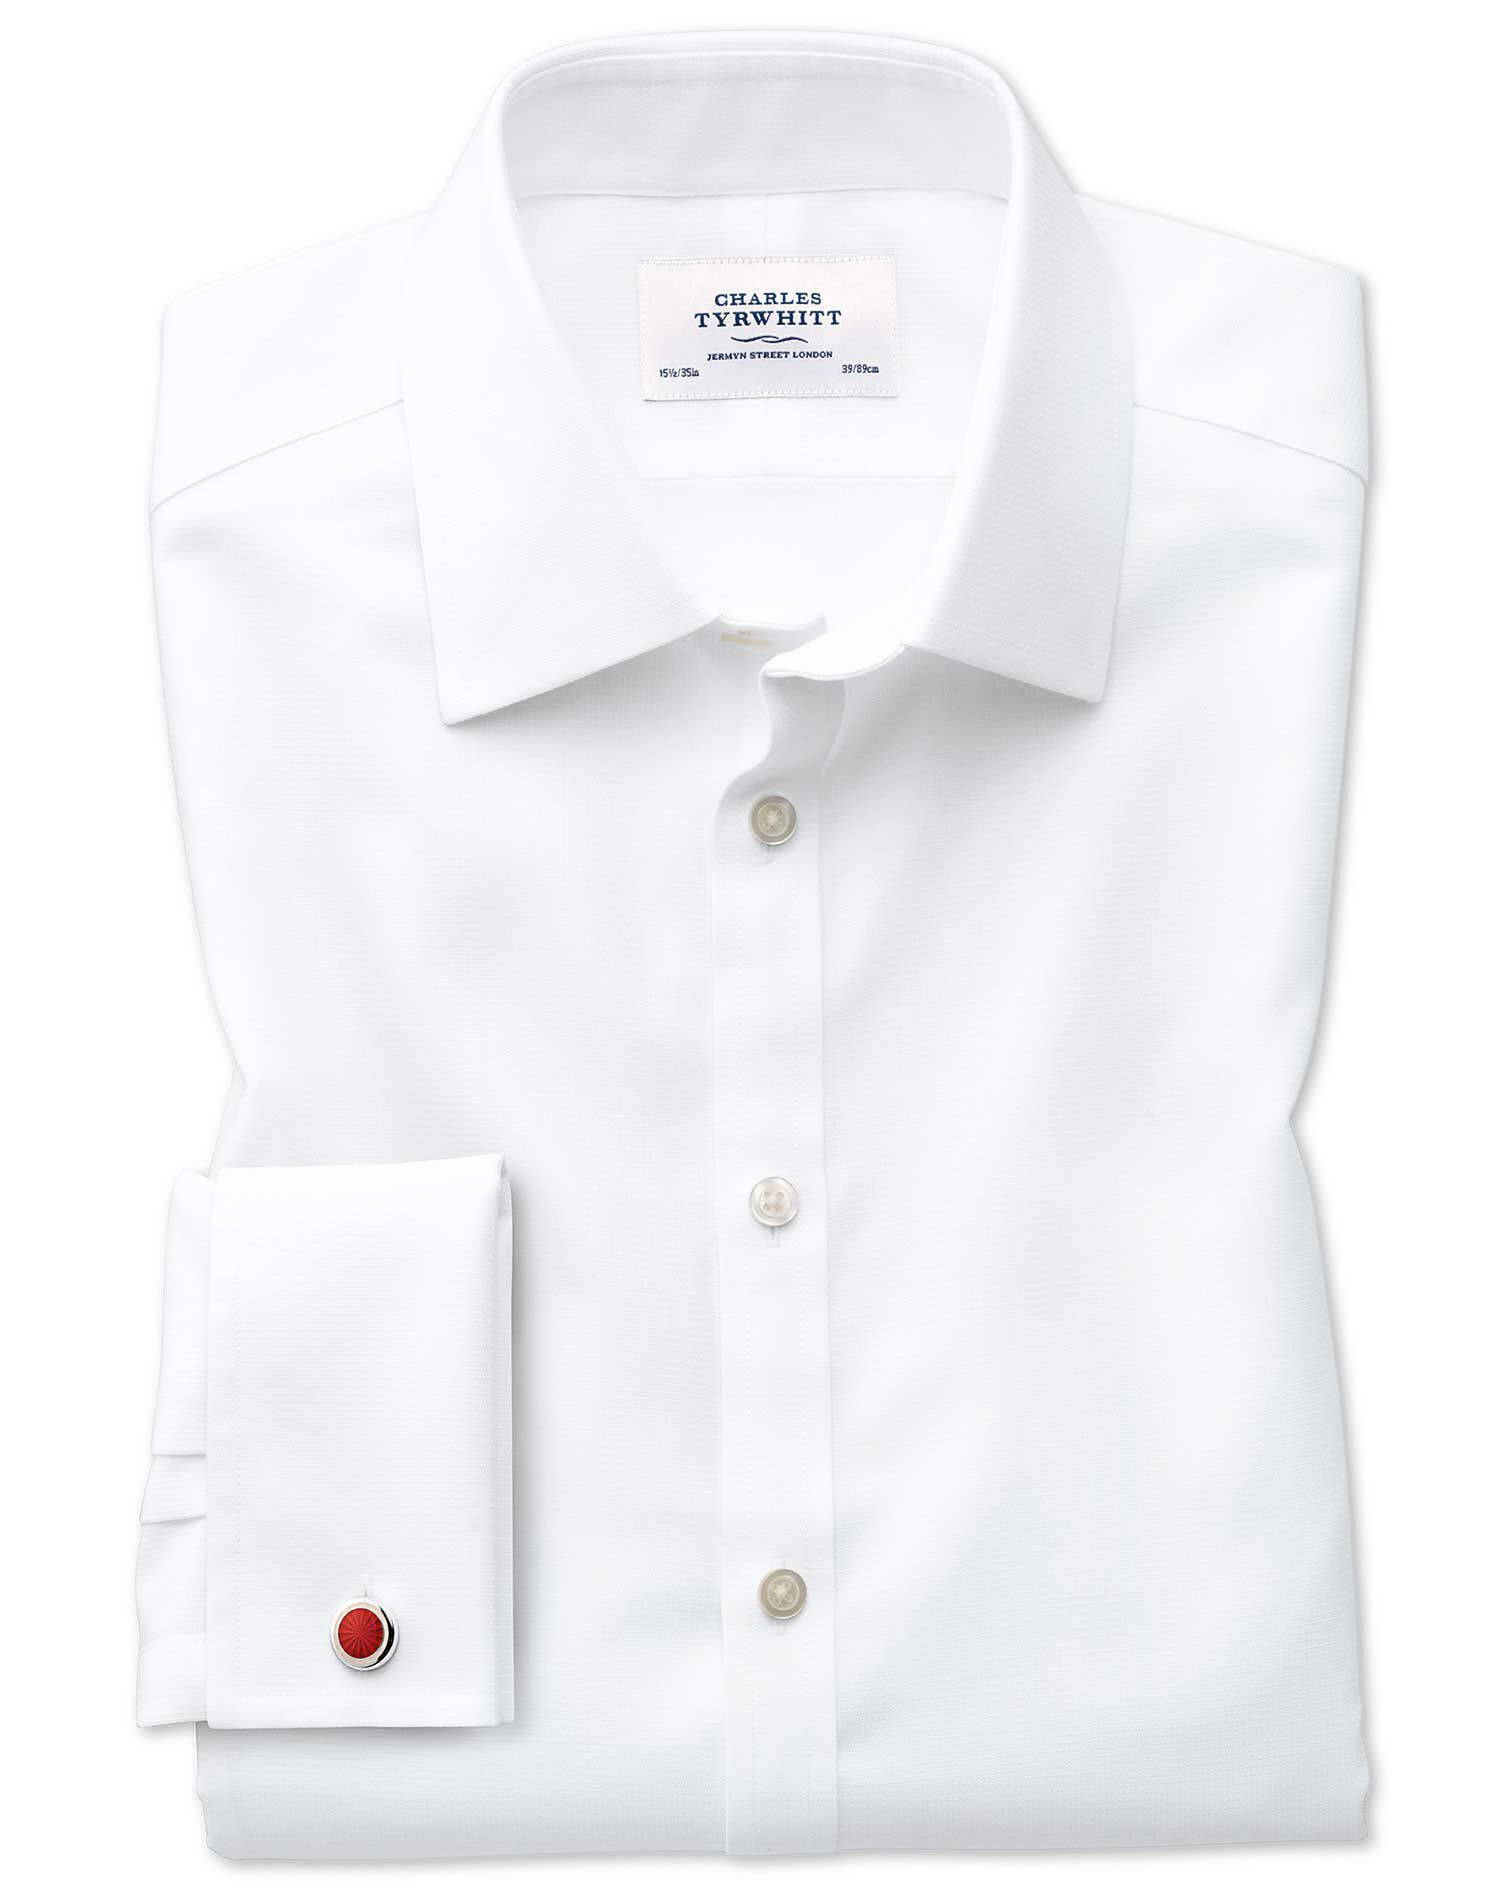 Slim Fit Non-Iron Square Weave White Cotton Formal Shirt Double Cuff Size 18/35 by Charles Tyrwhitt